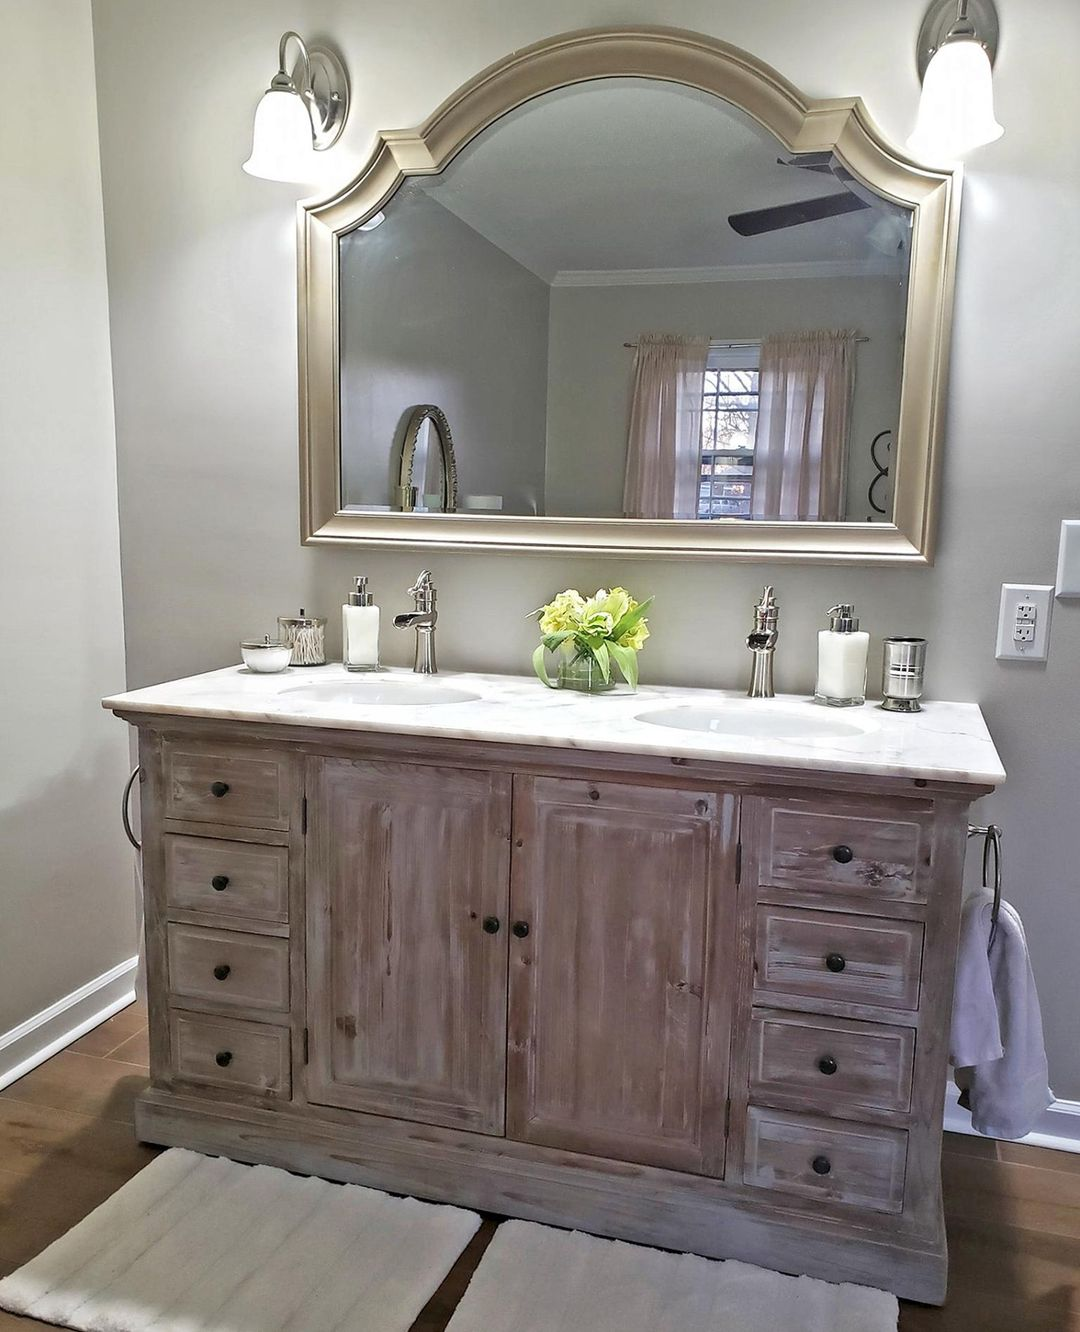 We love the rustic touch that our Reclaimed Wood Vanity adds to this bathroom.